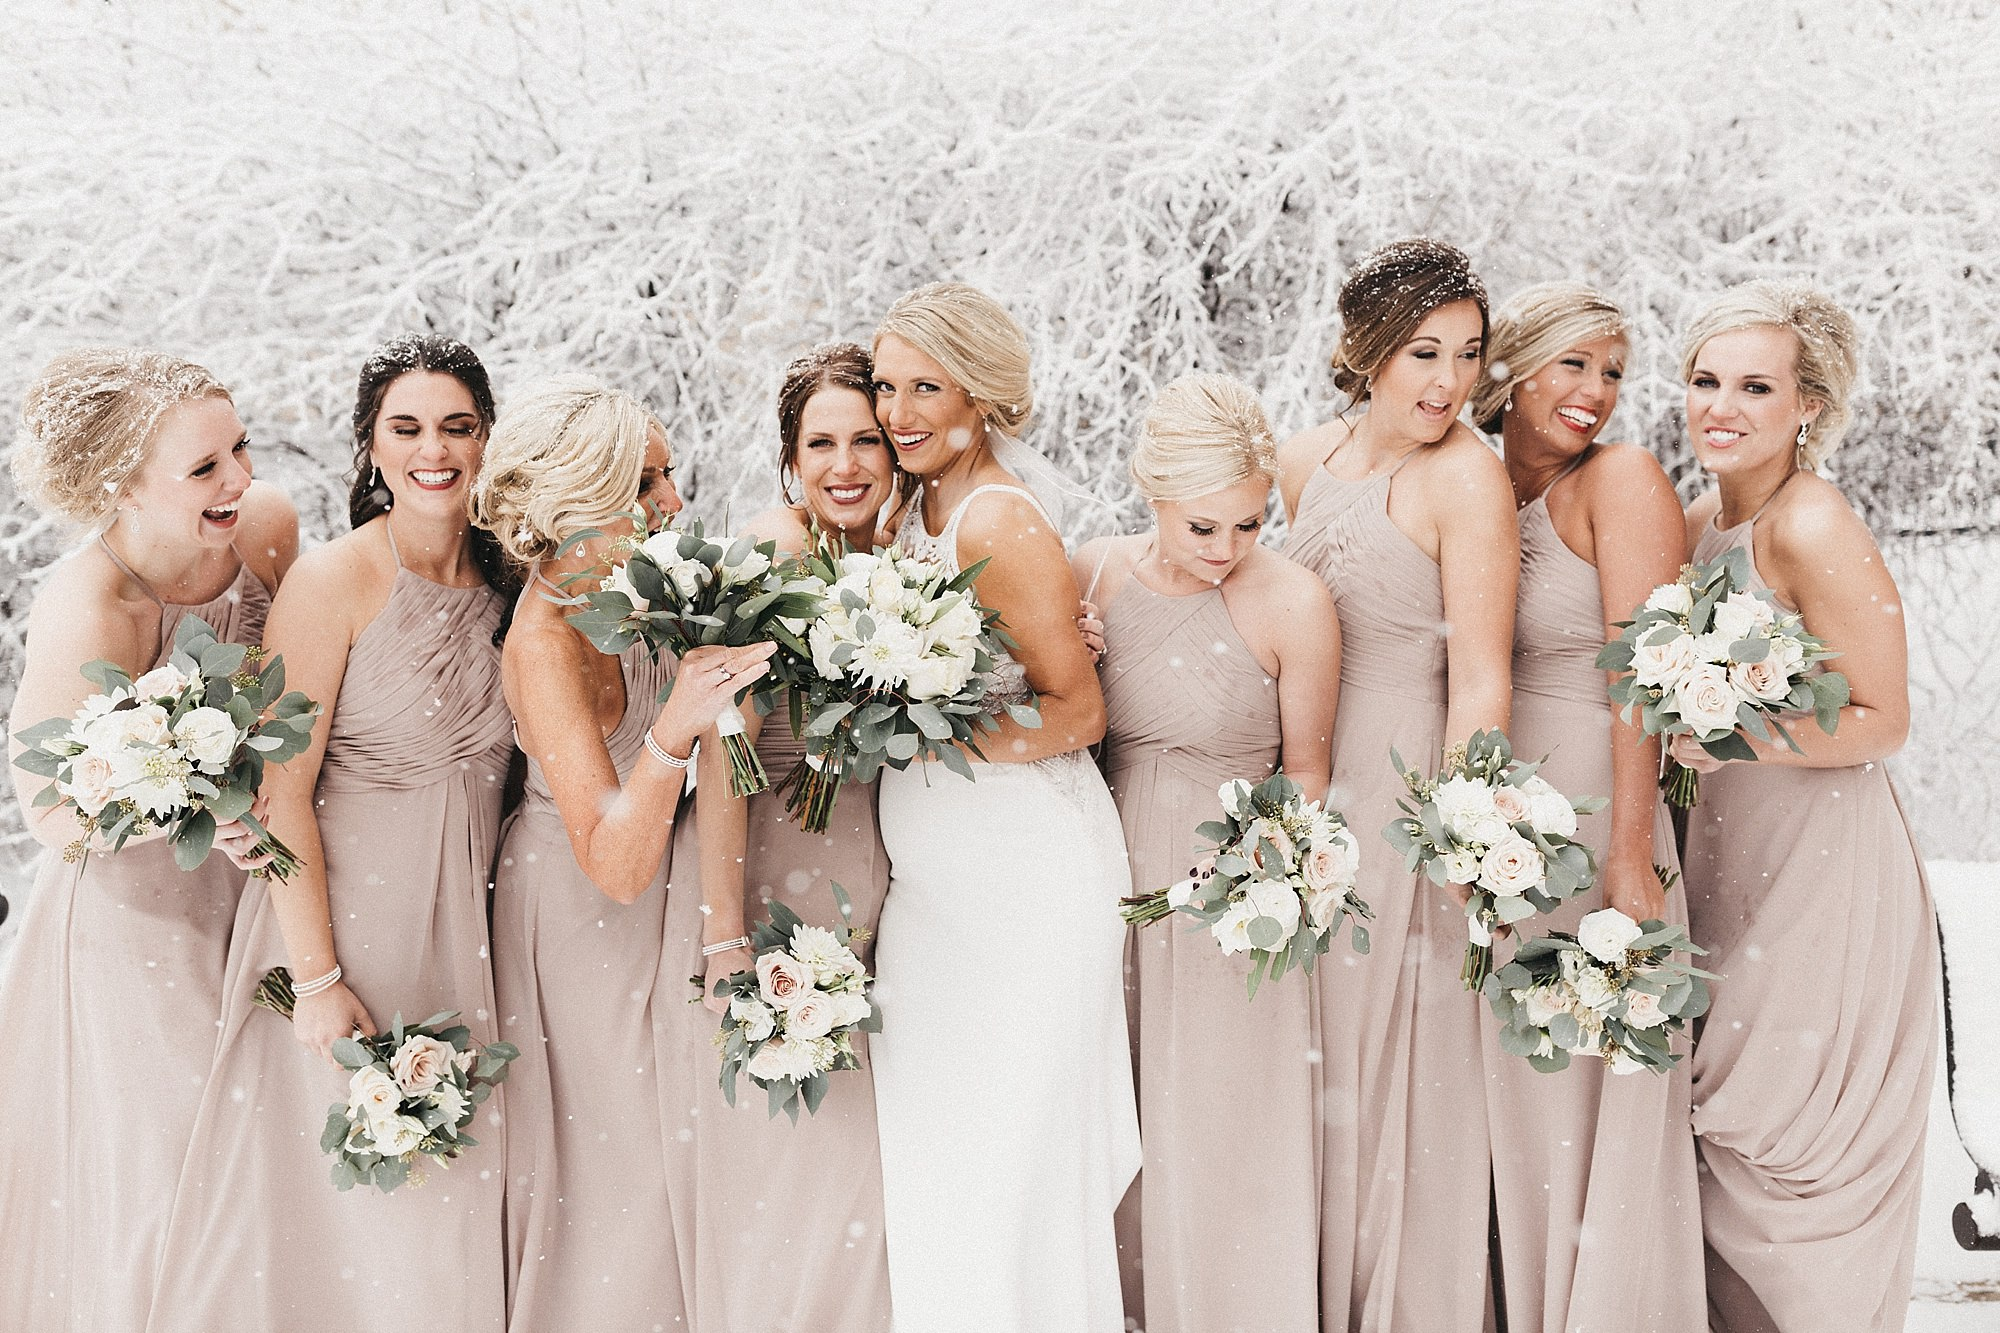 snowy bridal party portraits with pregnant bride